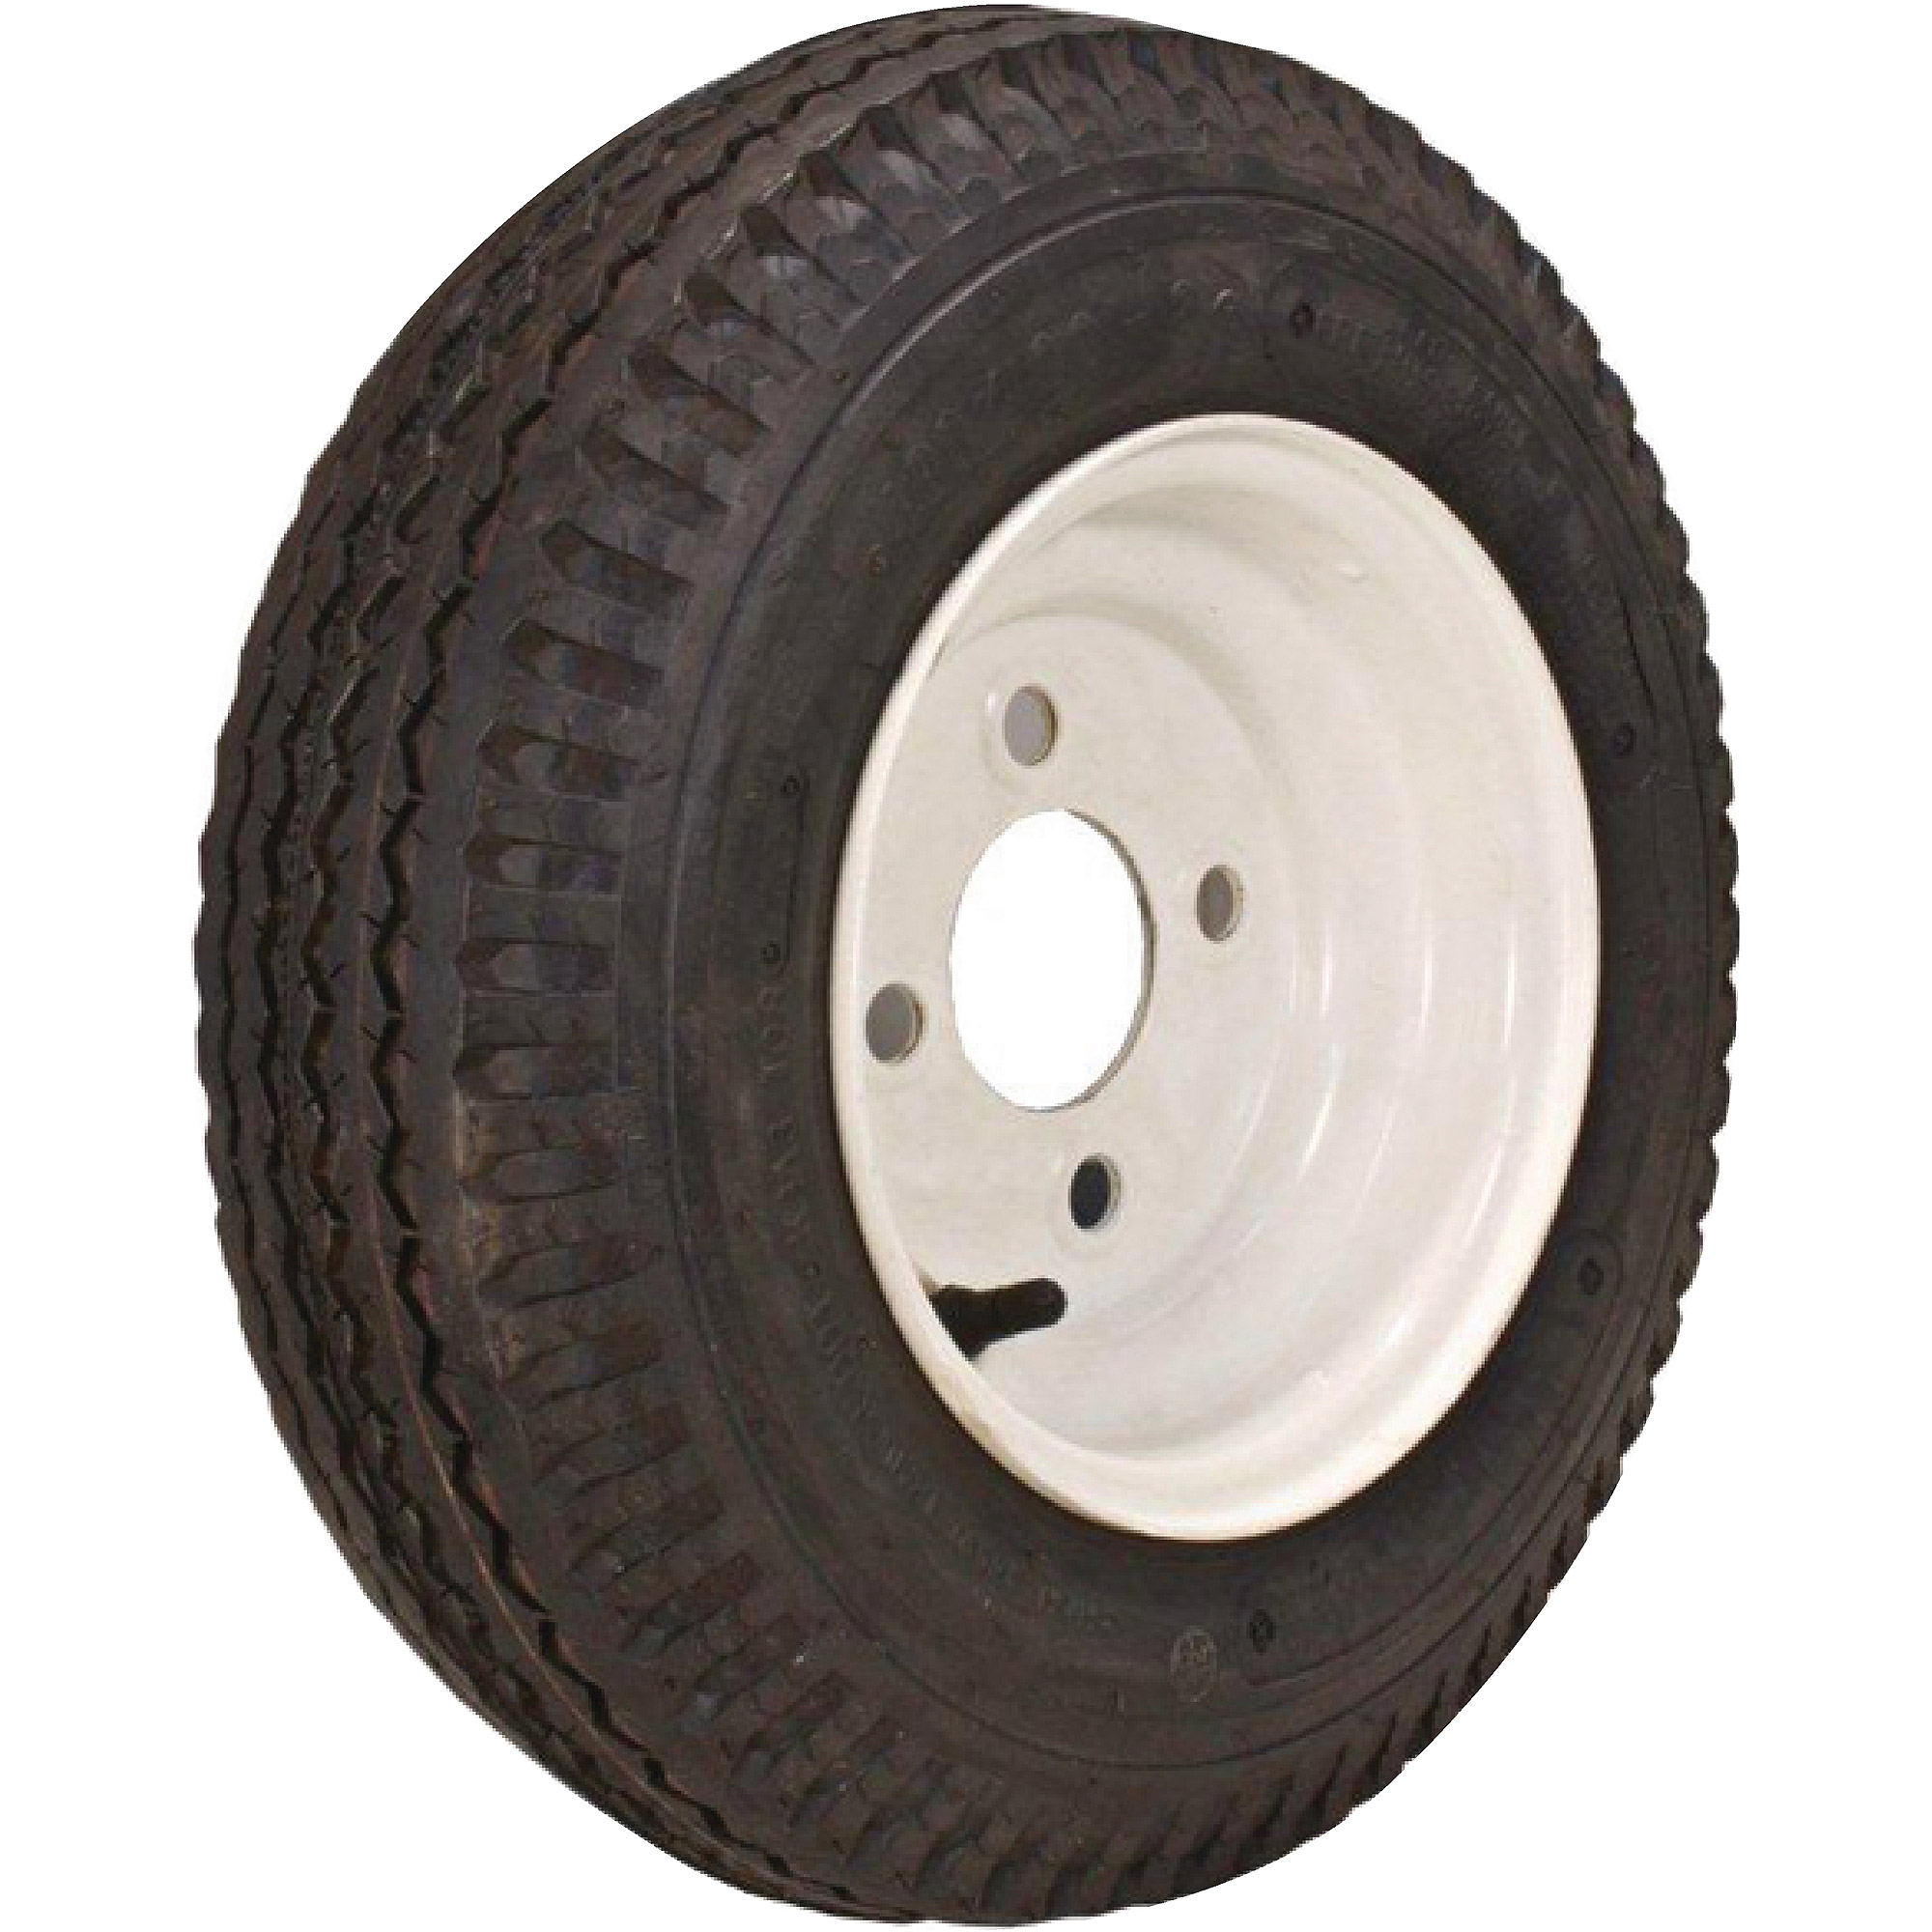 Loadstar Bias Tire and Wheel (Rim) Assembly 480/400-8 4 Hole